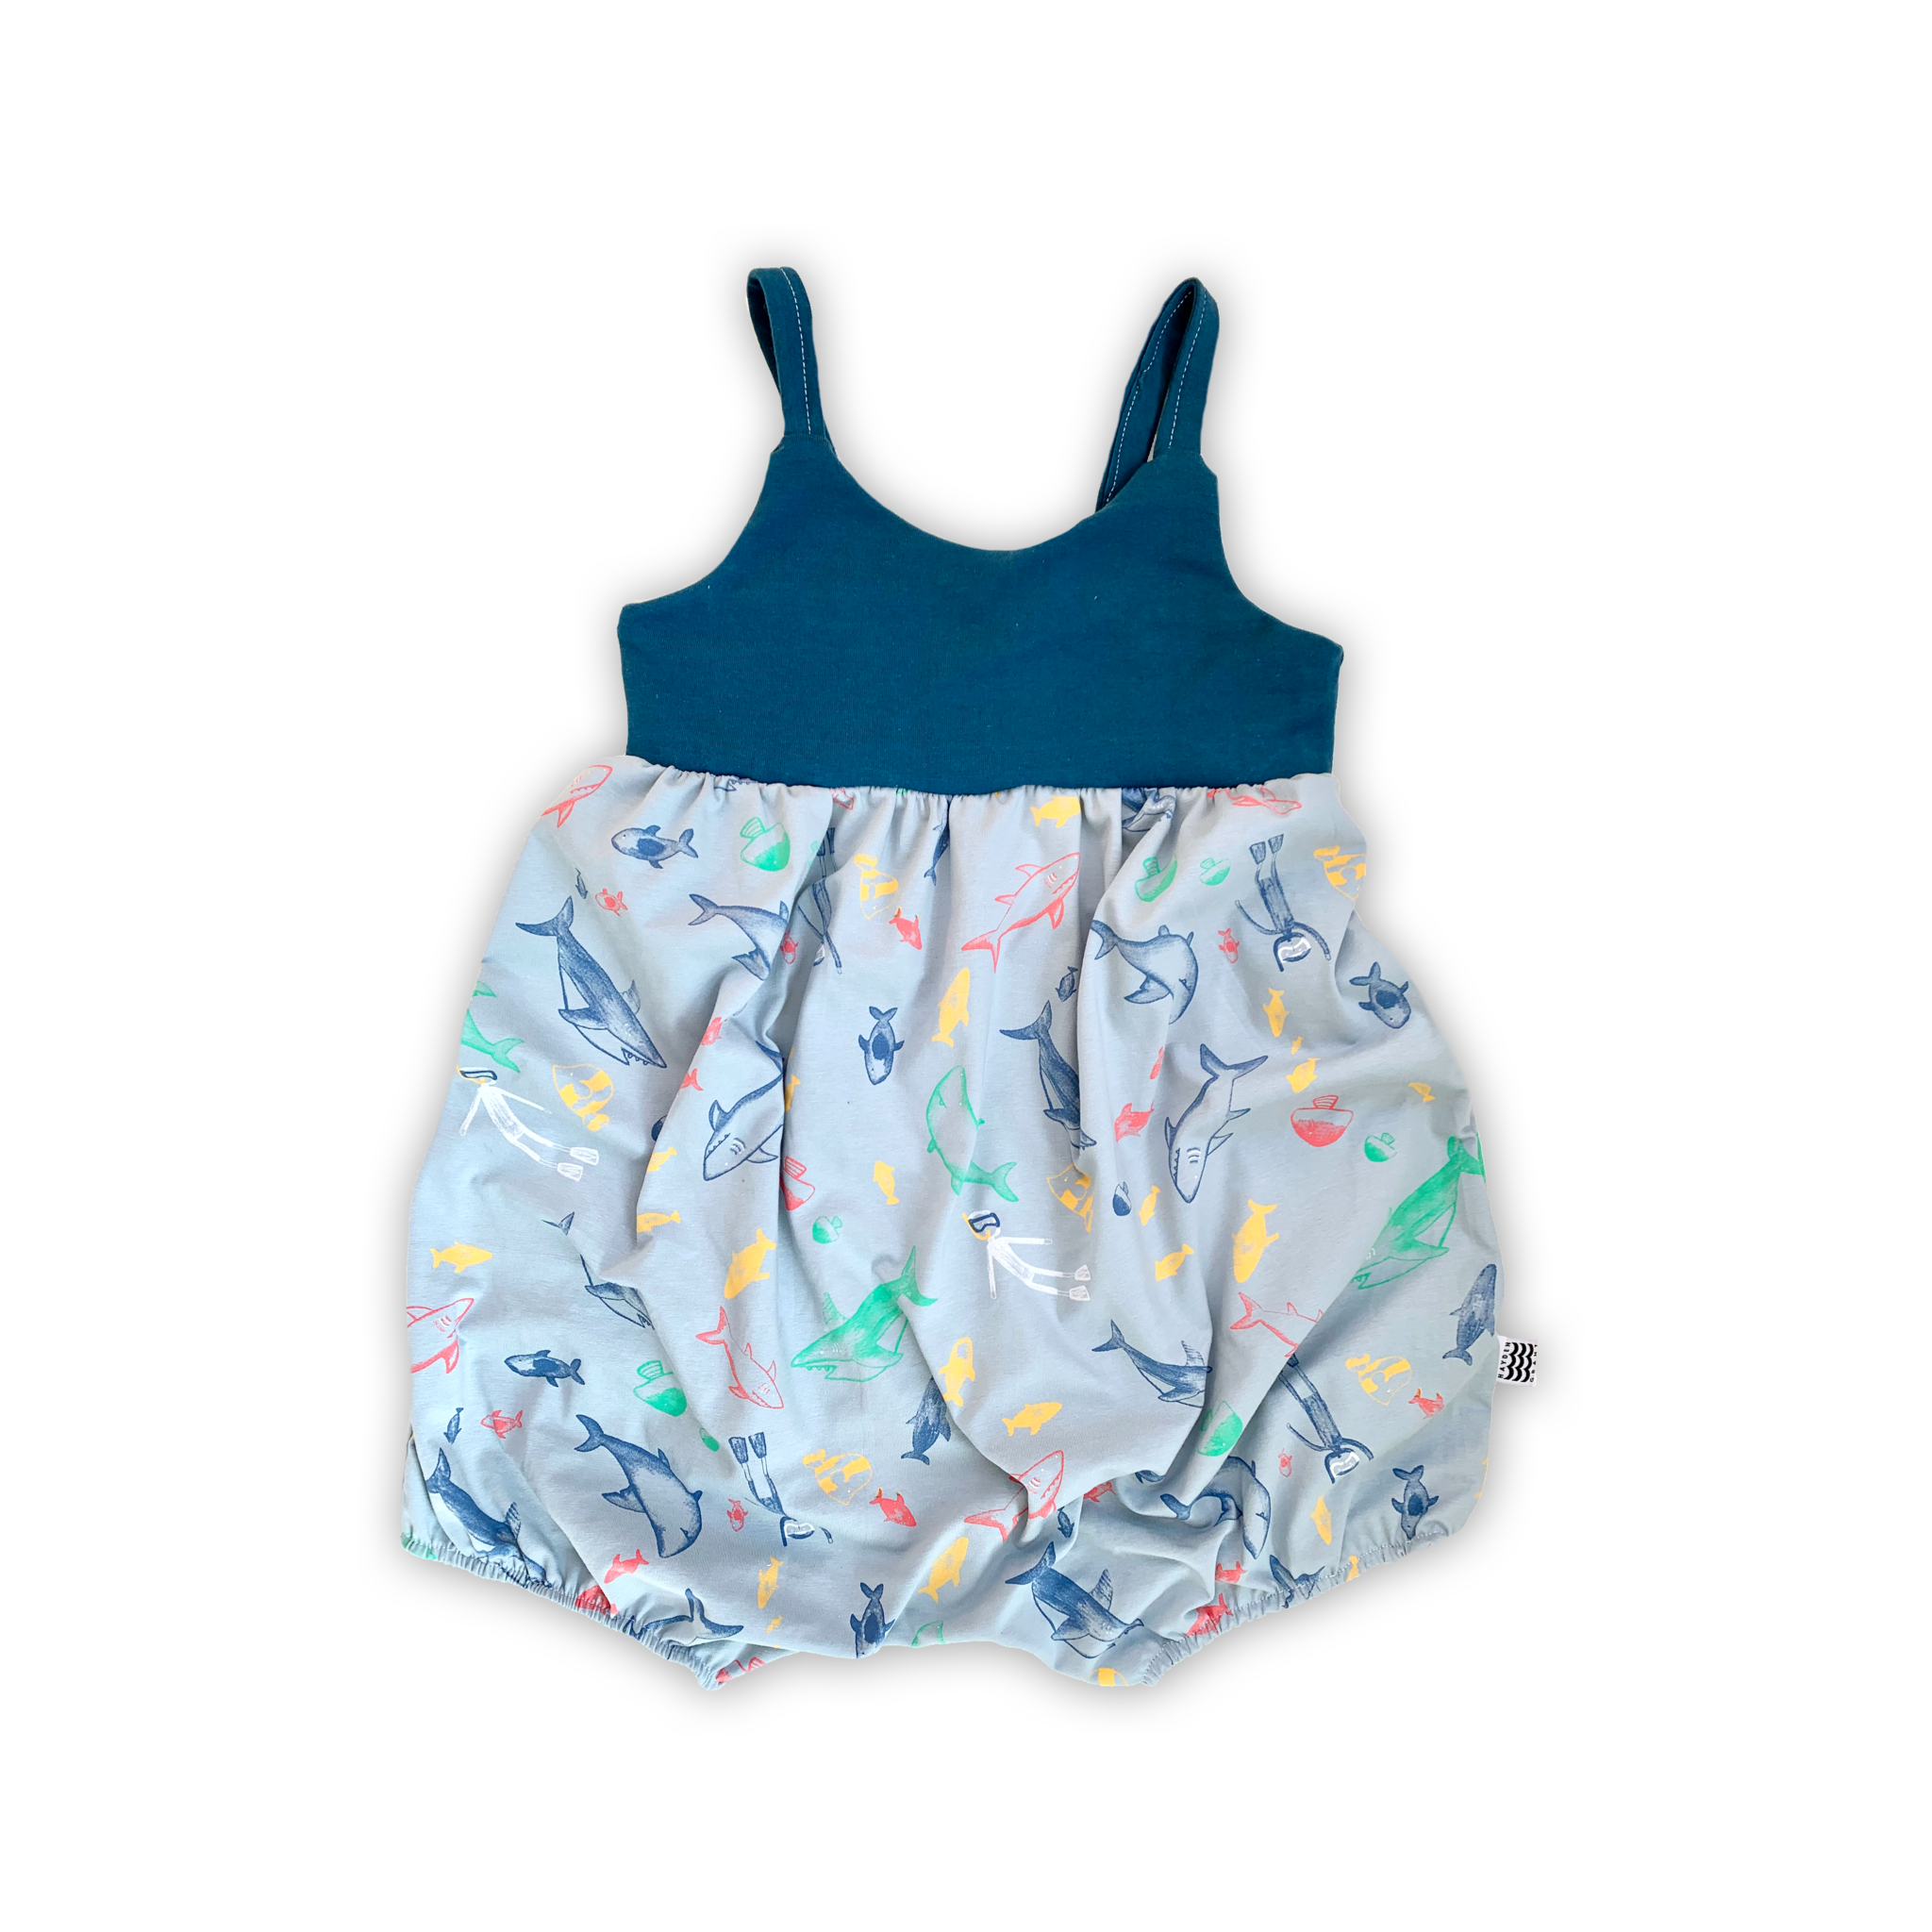 Bellevue Bubble Romper in Great White Reef (choice of sleeve length)